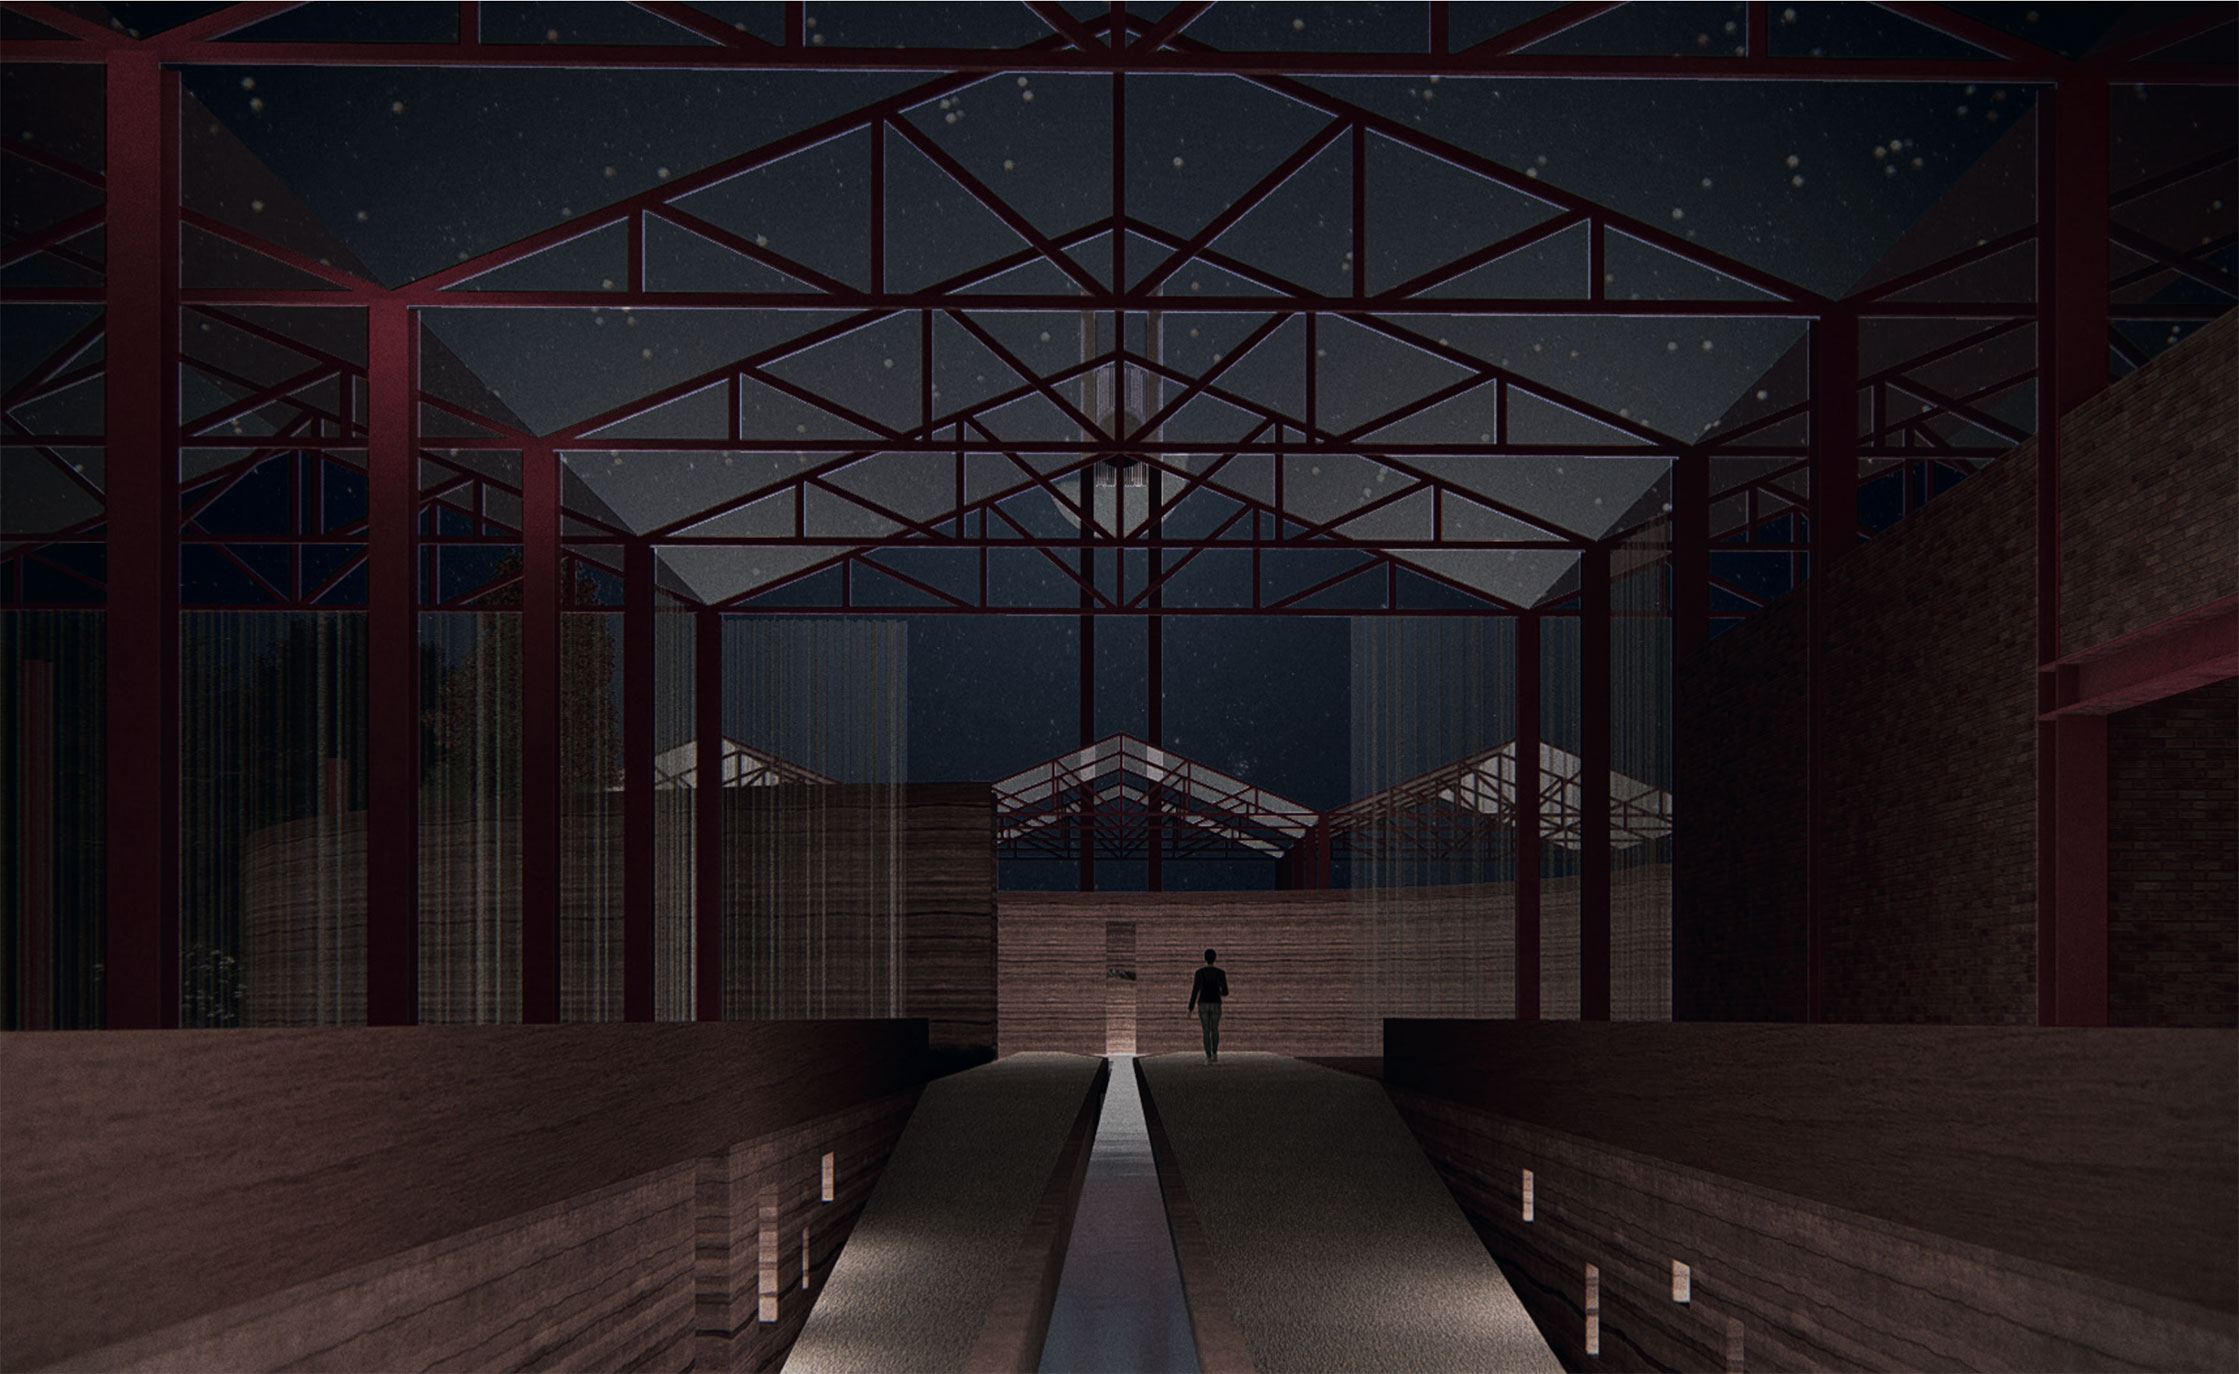 The bus garage frame is covered with mesh allowing for projections of the night sky.